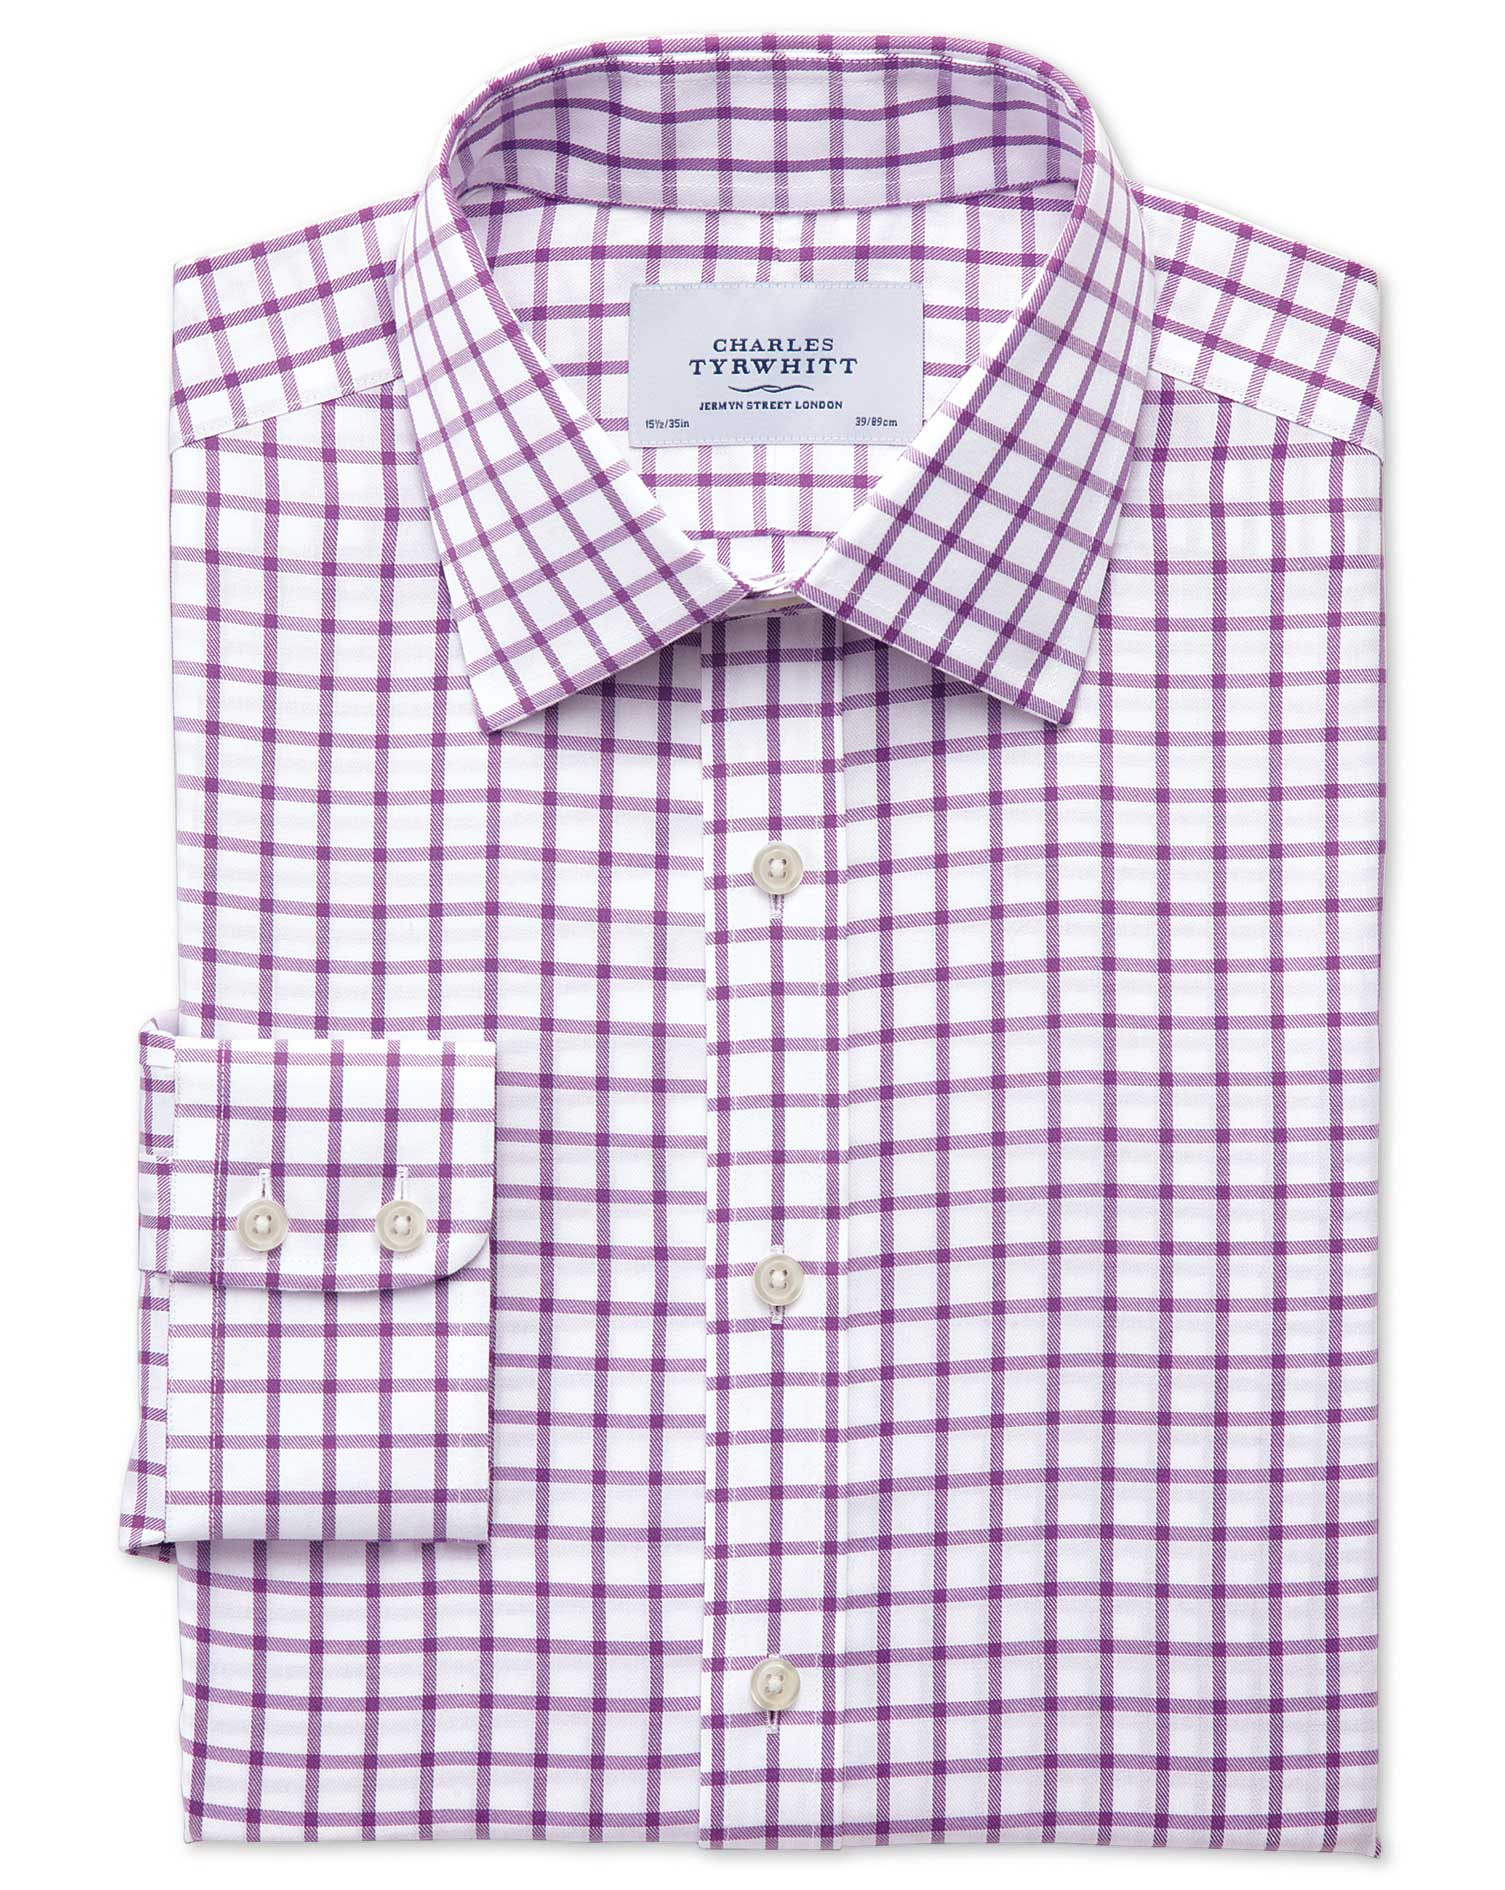 Slim Fit Non-Iron Twill Grid Check Purple Cotton Formal Shirt Single Cuff Size 16.5/34 by Charles Ty